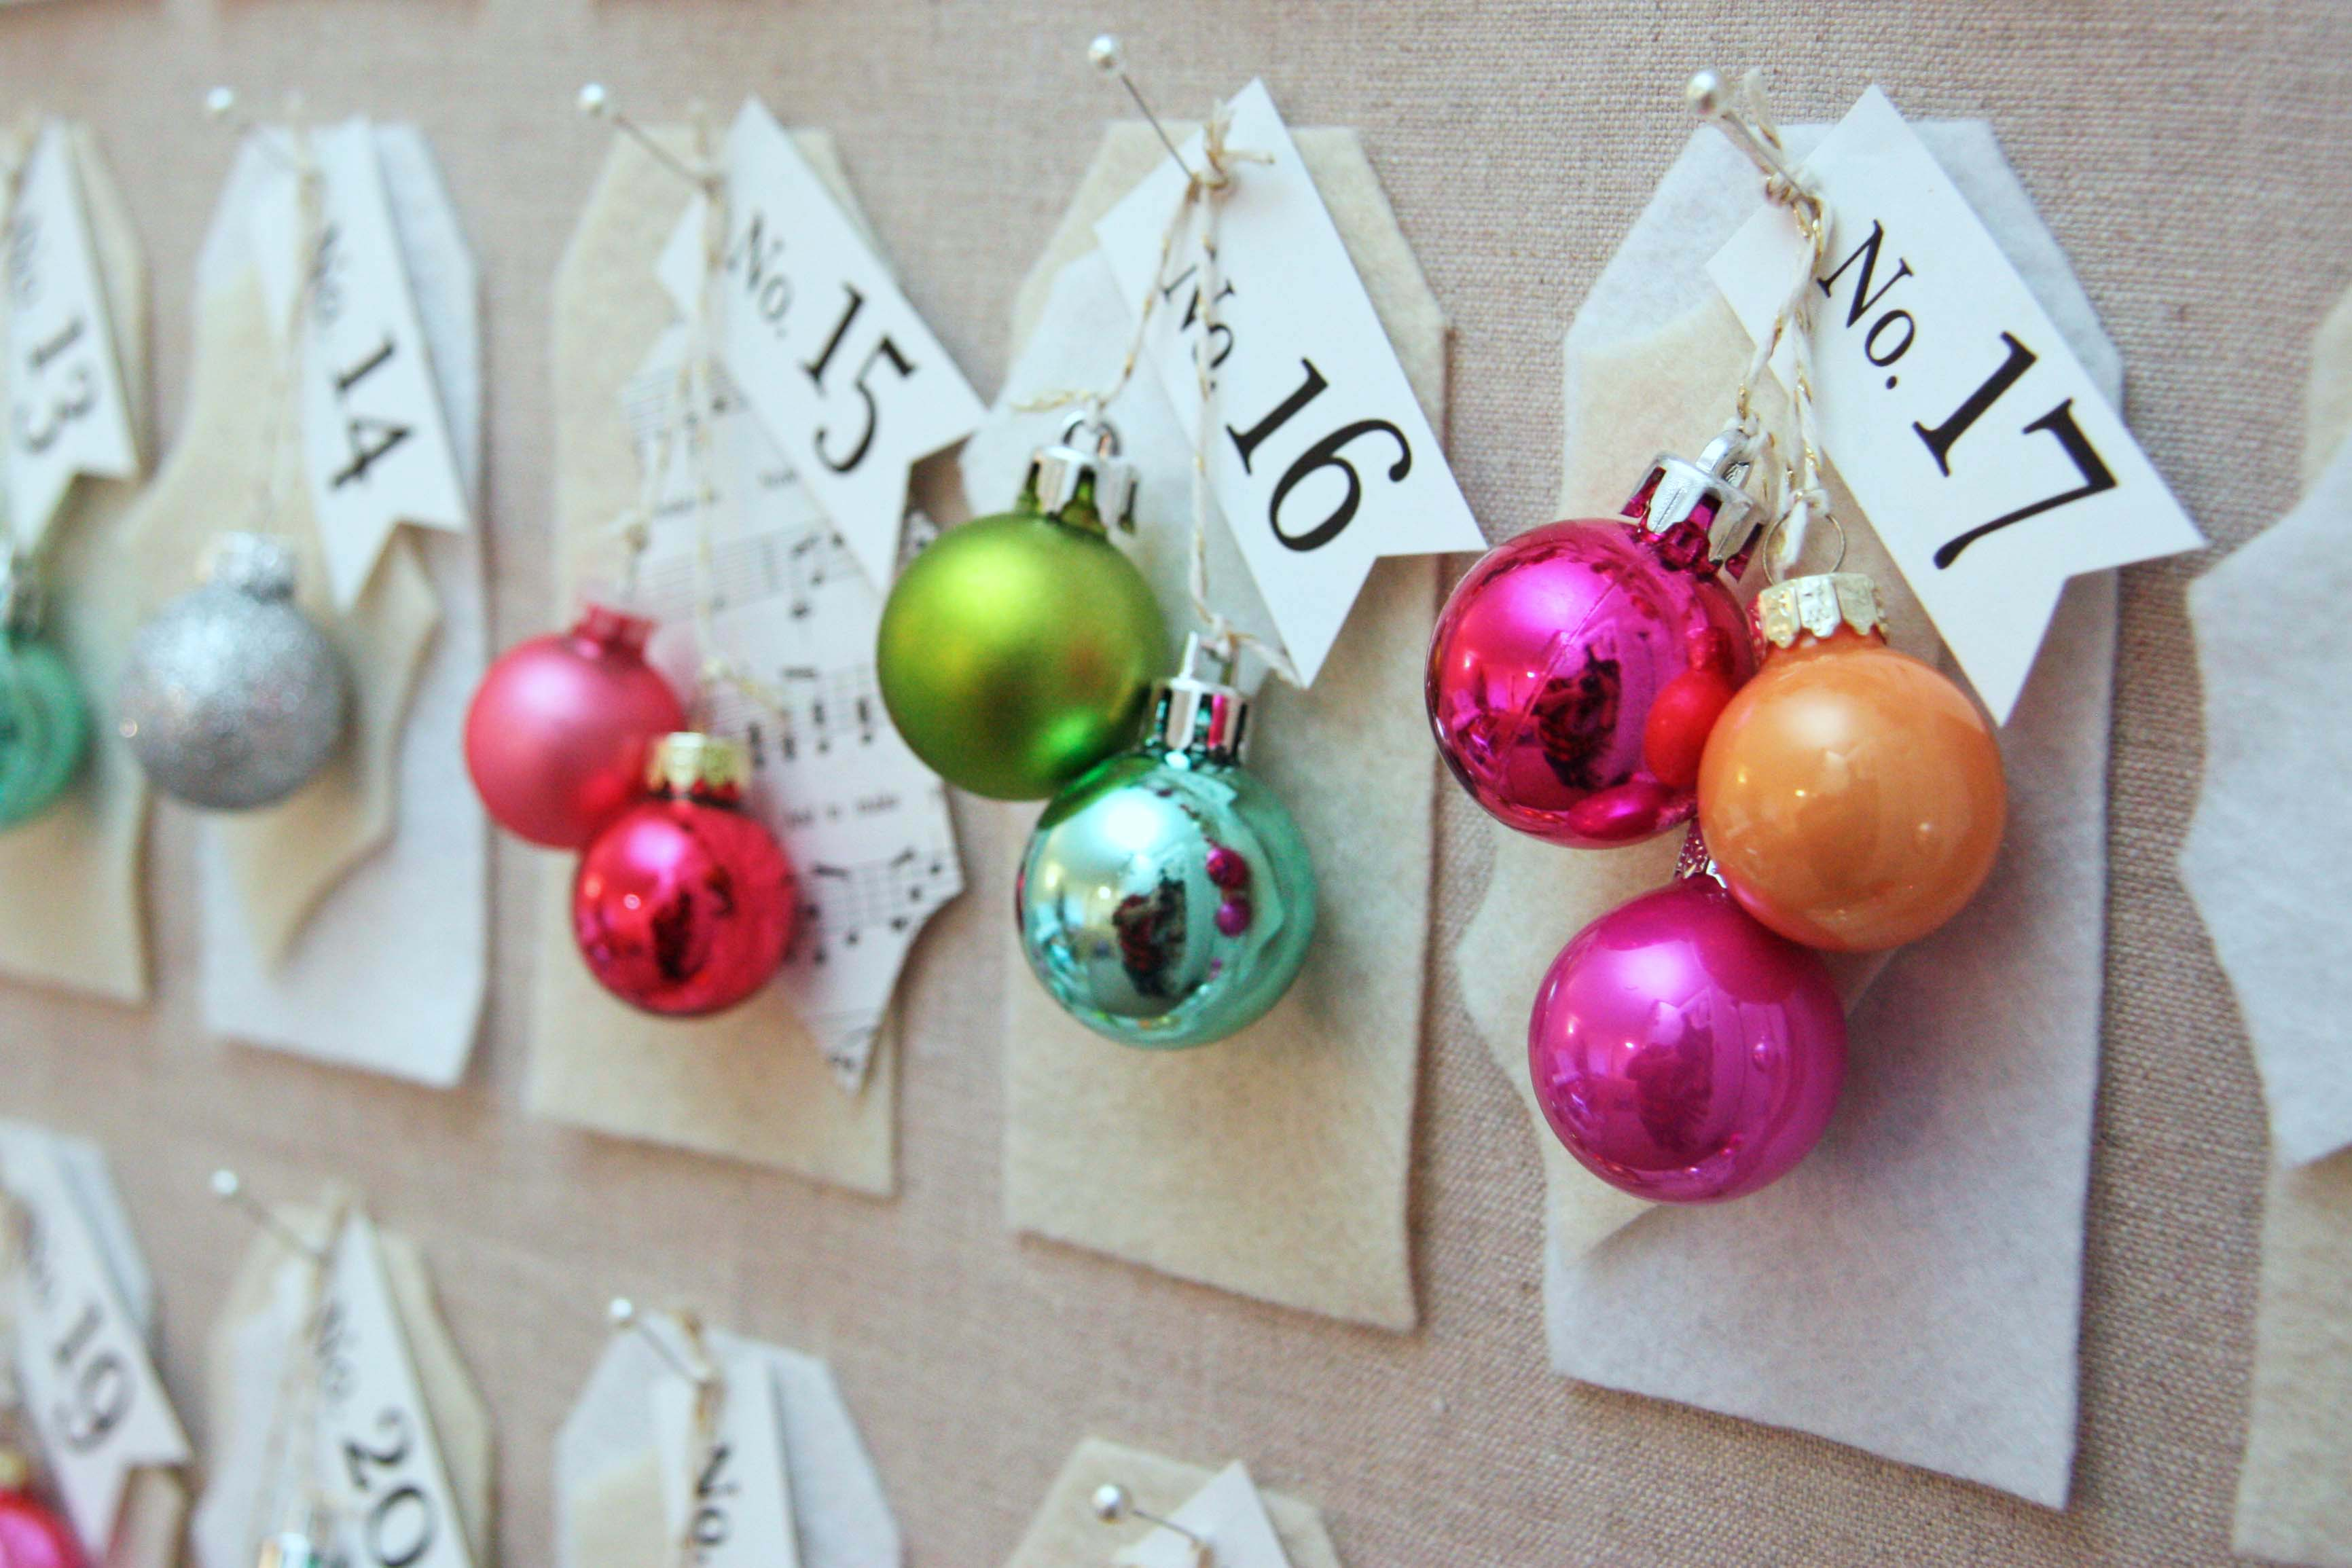 DIY craft project...full tutorial to make this Christmas countdown board. Easy to do as a craft party activity or with kids. You can make it in one evening. Come over to the blog to see how to make it.